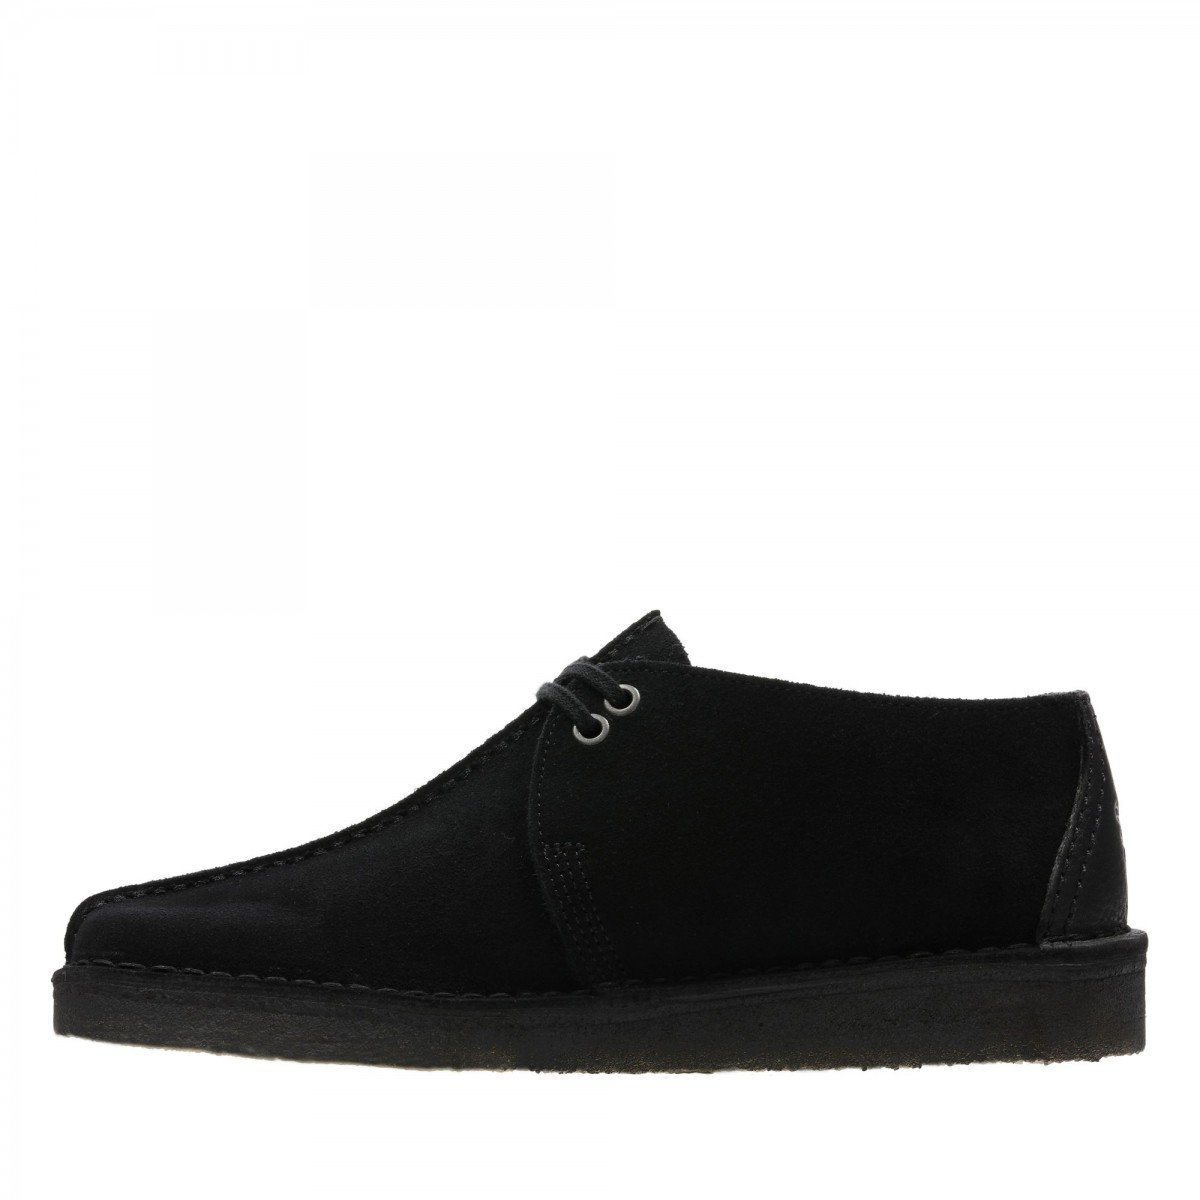 Bank Robber Clarks Black Suede for sale in Ships From Usa